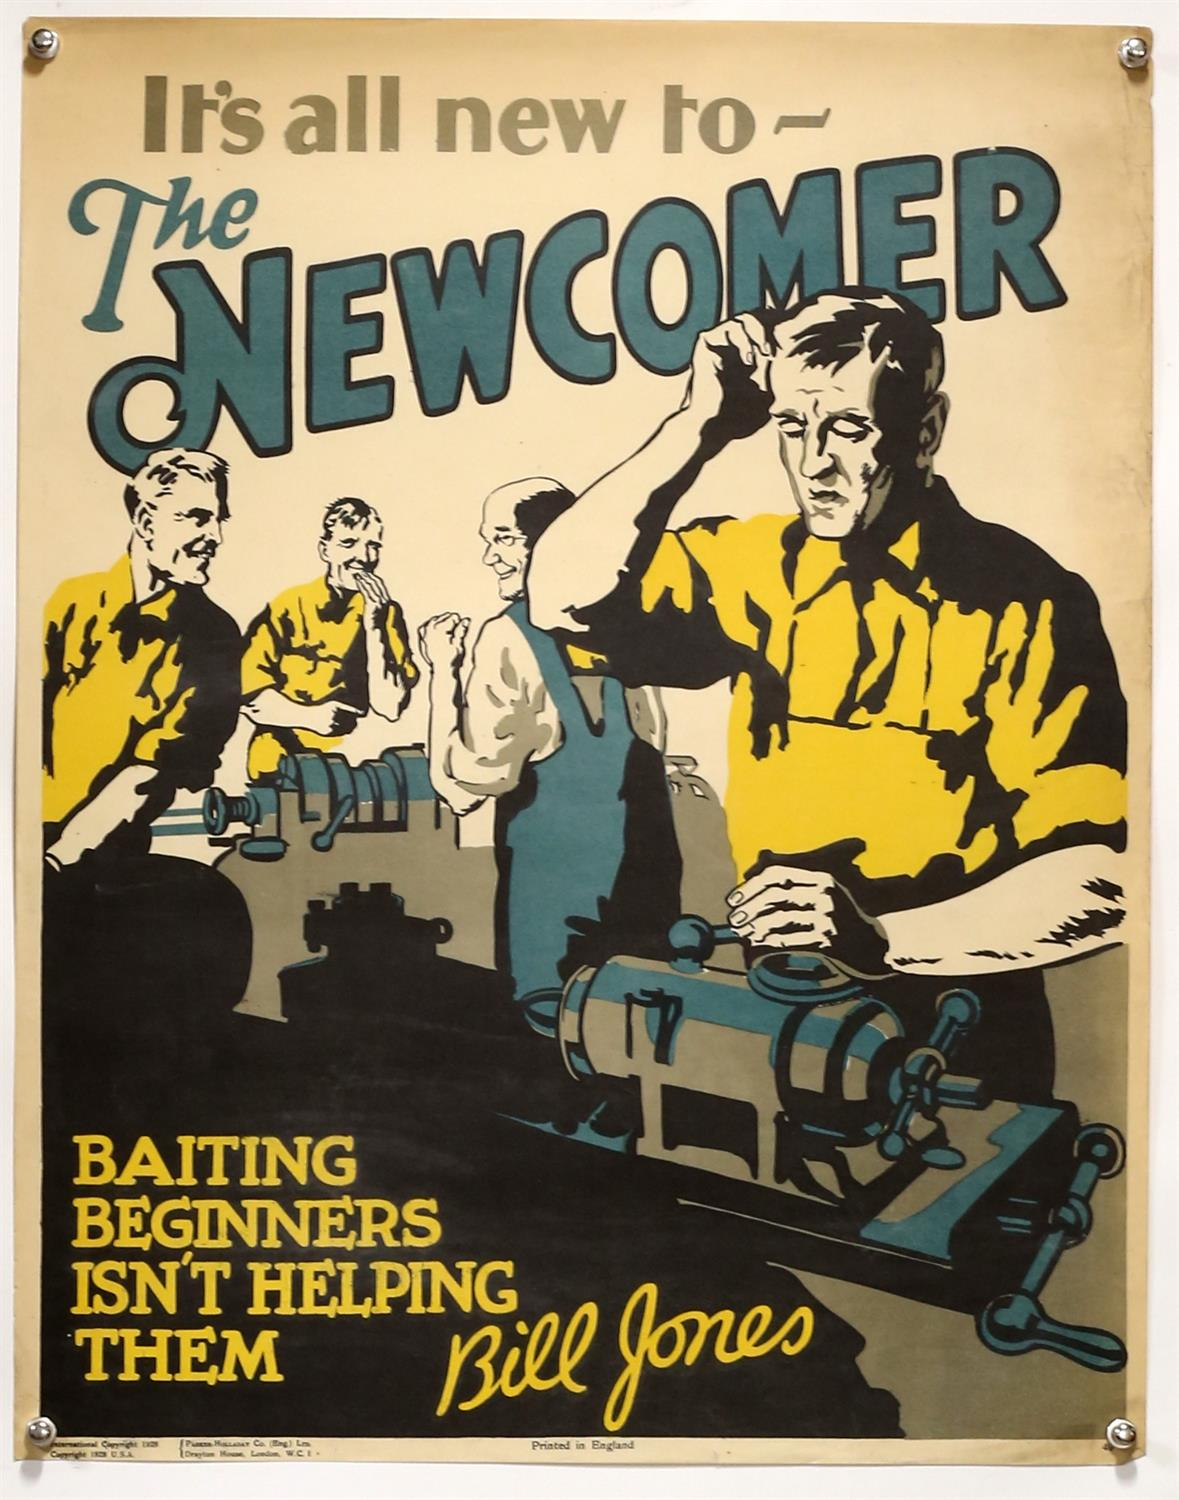 'It's all new to the Newcomer' - Original Vintage information poster by Bill Jones,